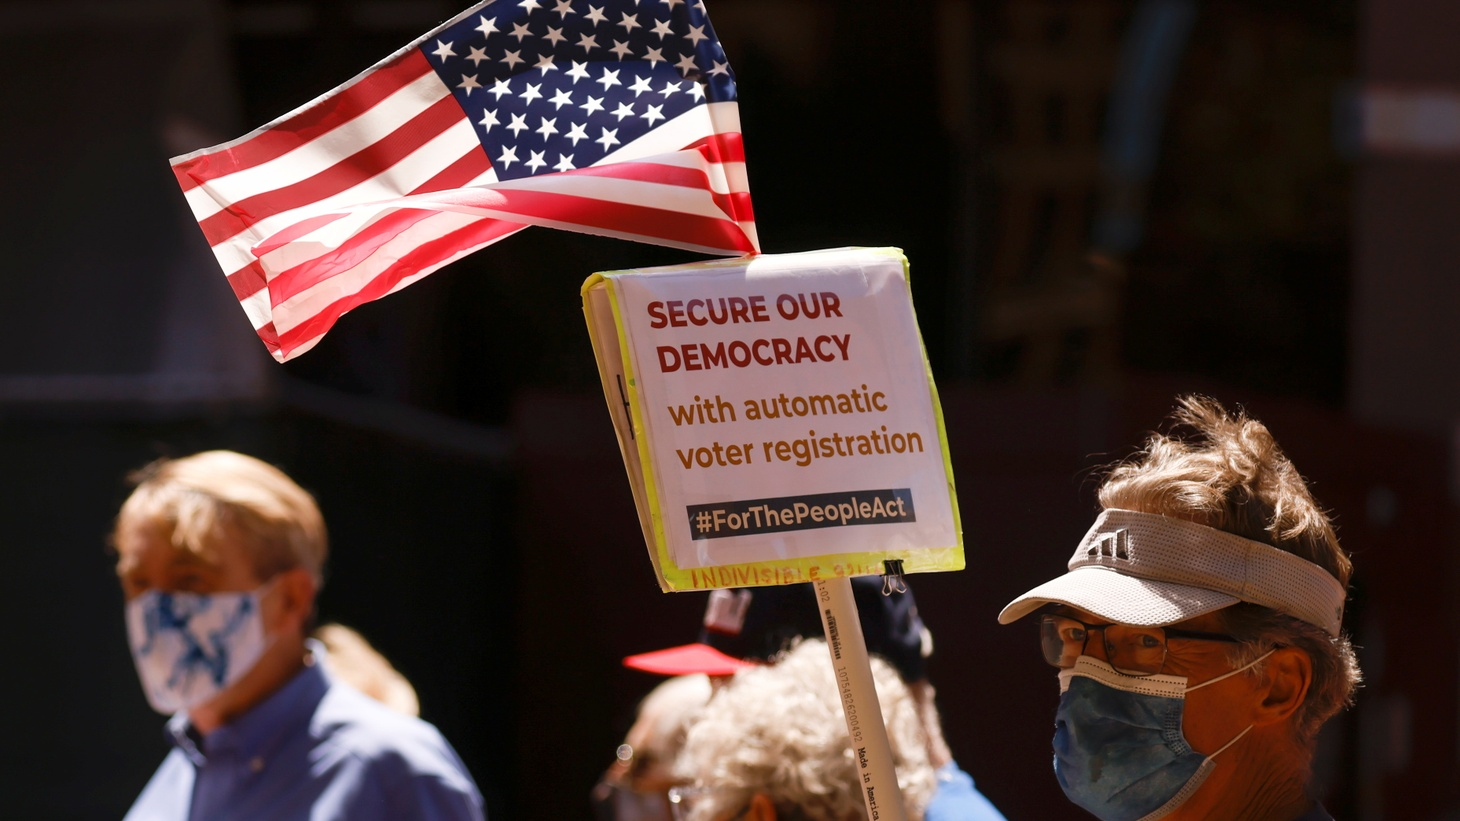 """Demonstrators demand the passage of the """"For the People Act,"""" intended to protect voting rights for all Americans, outside a federal building in San Diego, California, U.S., April 5, 2021."""